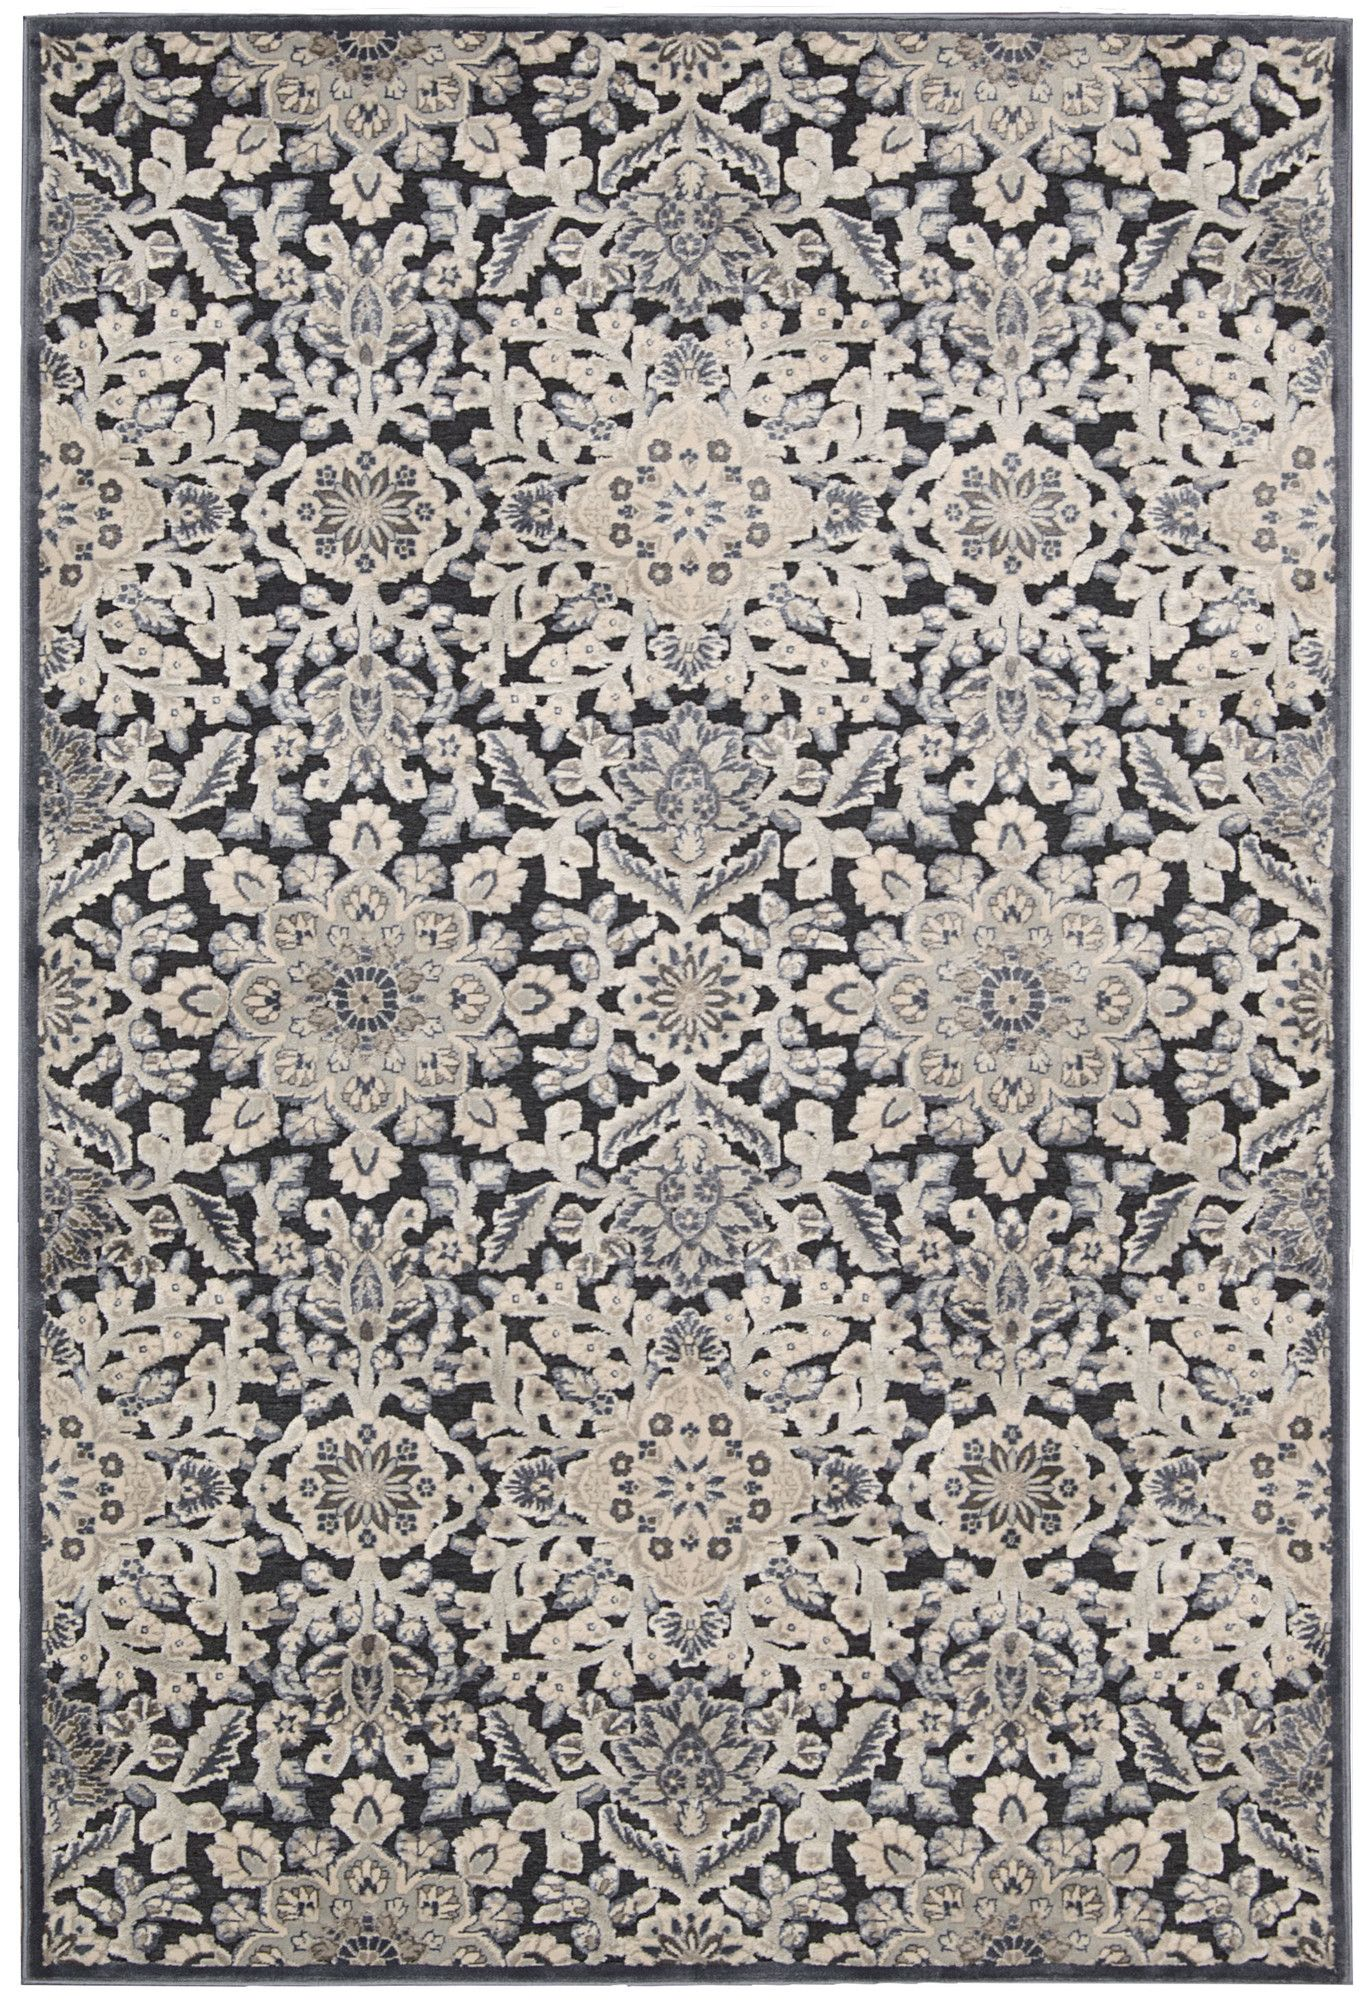 Bel Air Marseille Floral Charcoal Area Rug Clearance